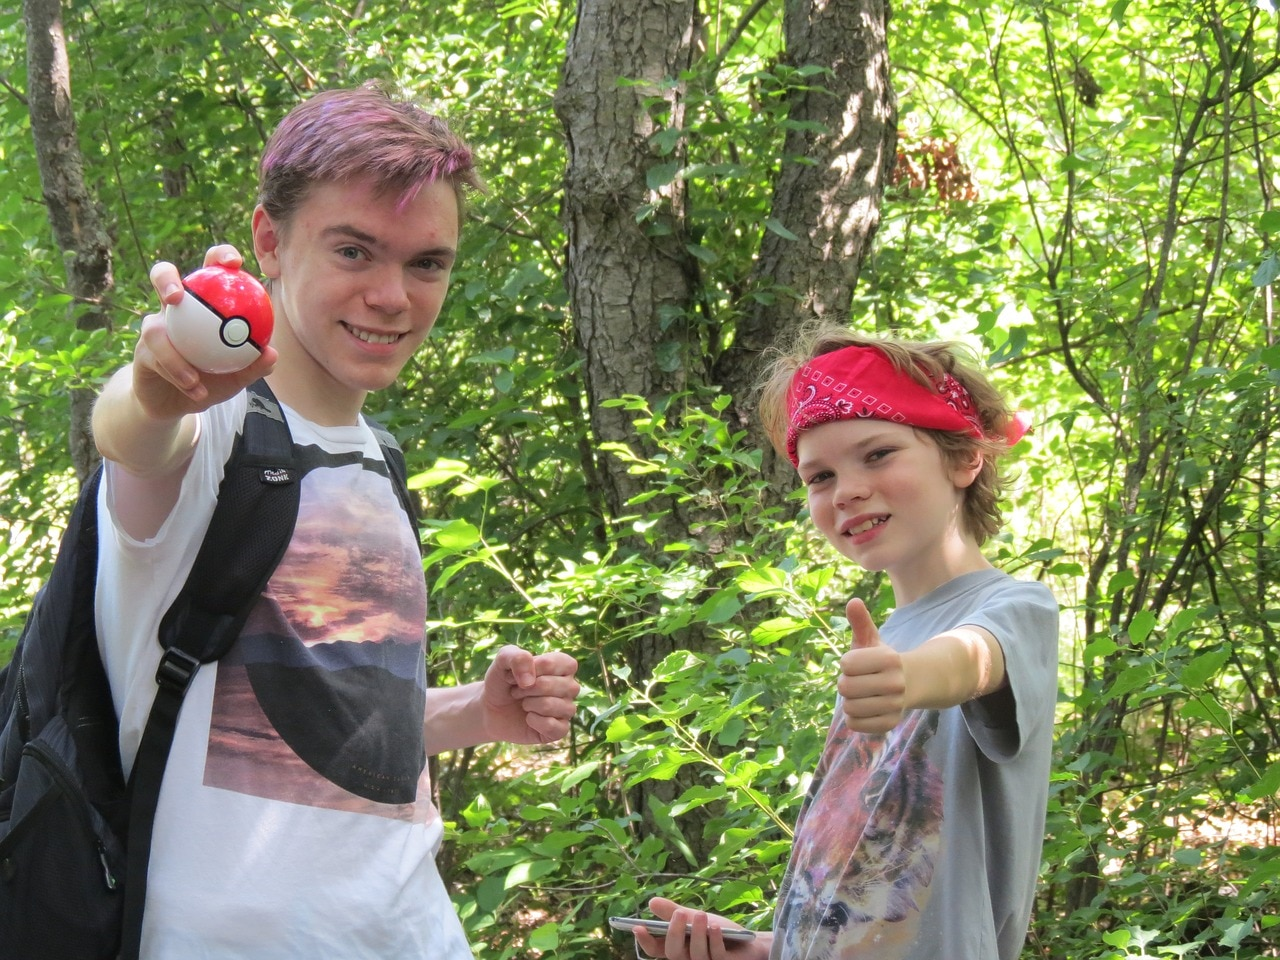 Pokémon Go Is More Than a Fun Game, It's Helping People With Autism